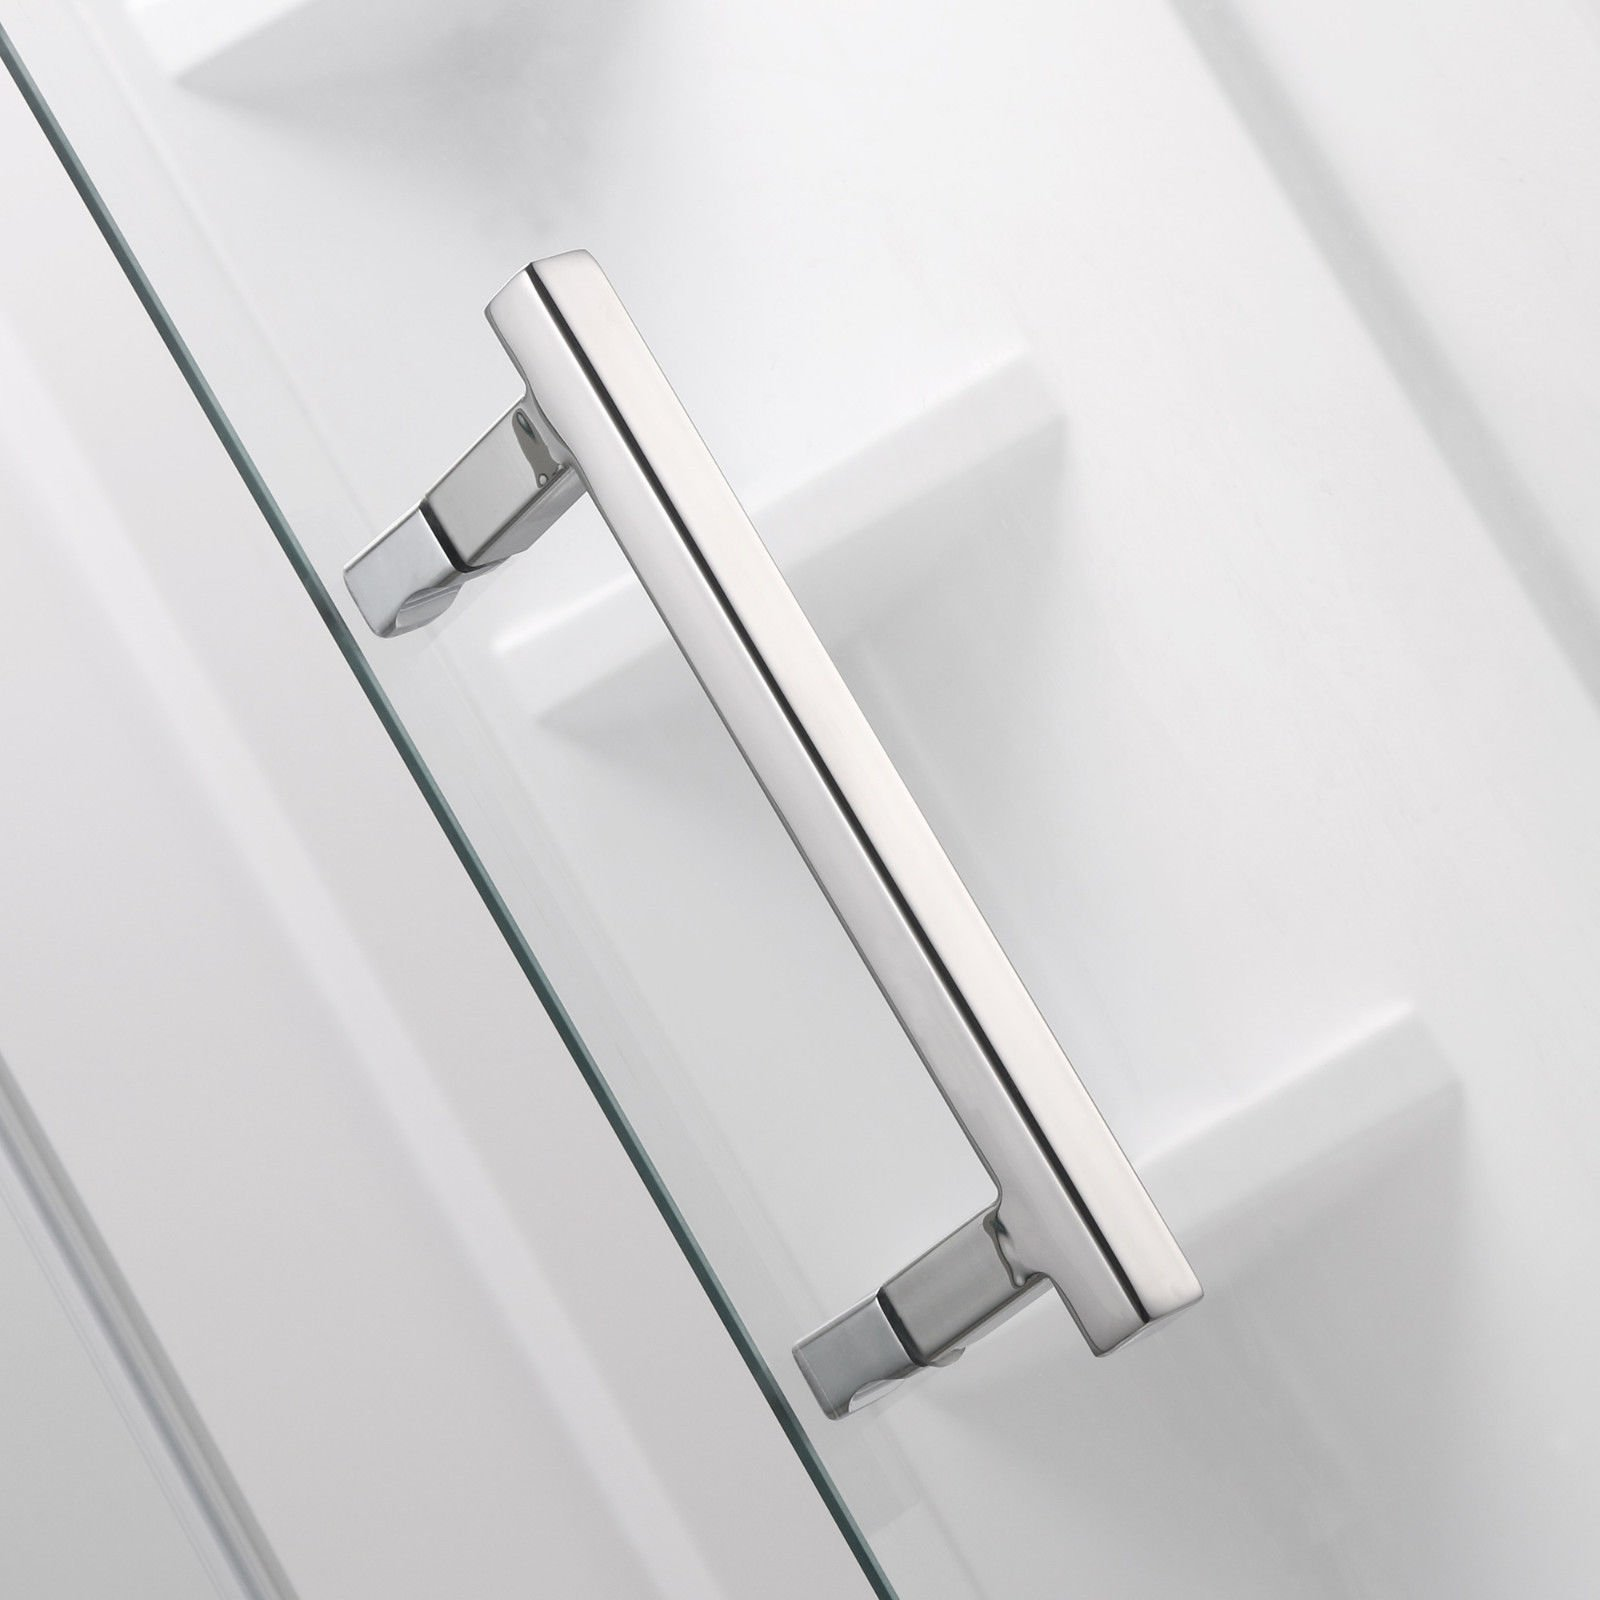 SUNNY SHOWER A33, Semi-frameless Neo-Angle Corner Shower Doors, Fit to 36 3/5'' W x 36 3/5'' D x 71 4/5'' H, 1/4'' Clear Glass, Chrome Finish- Back-wall & Shower Base Sold Separately by SUNNY SHOWER (Image #5)